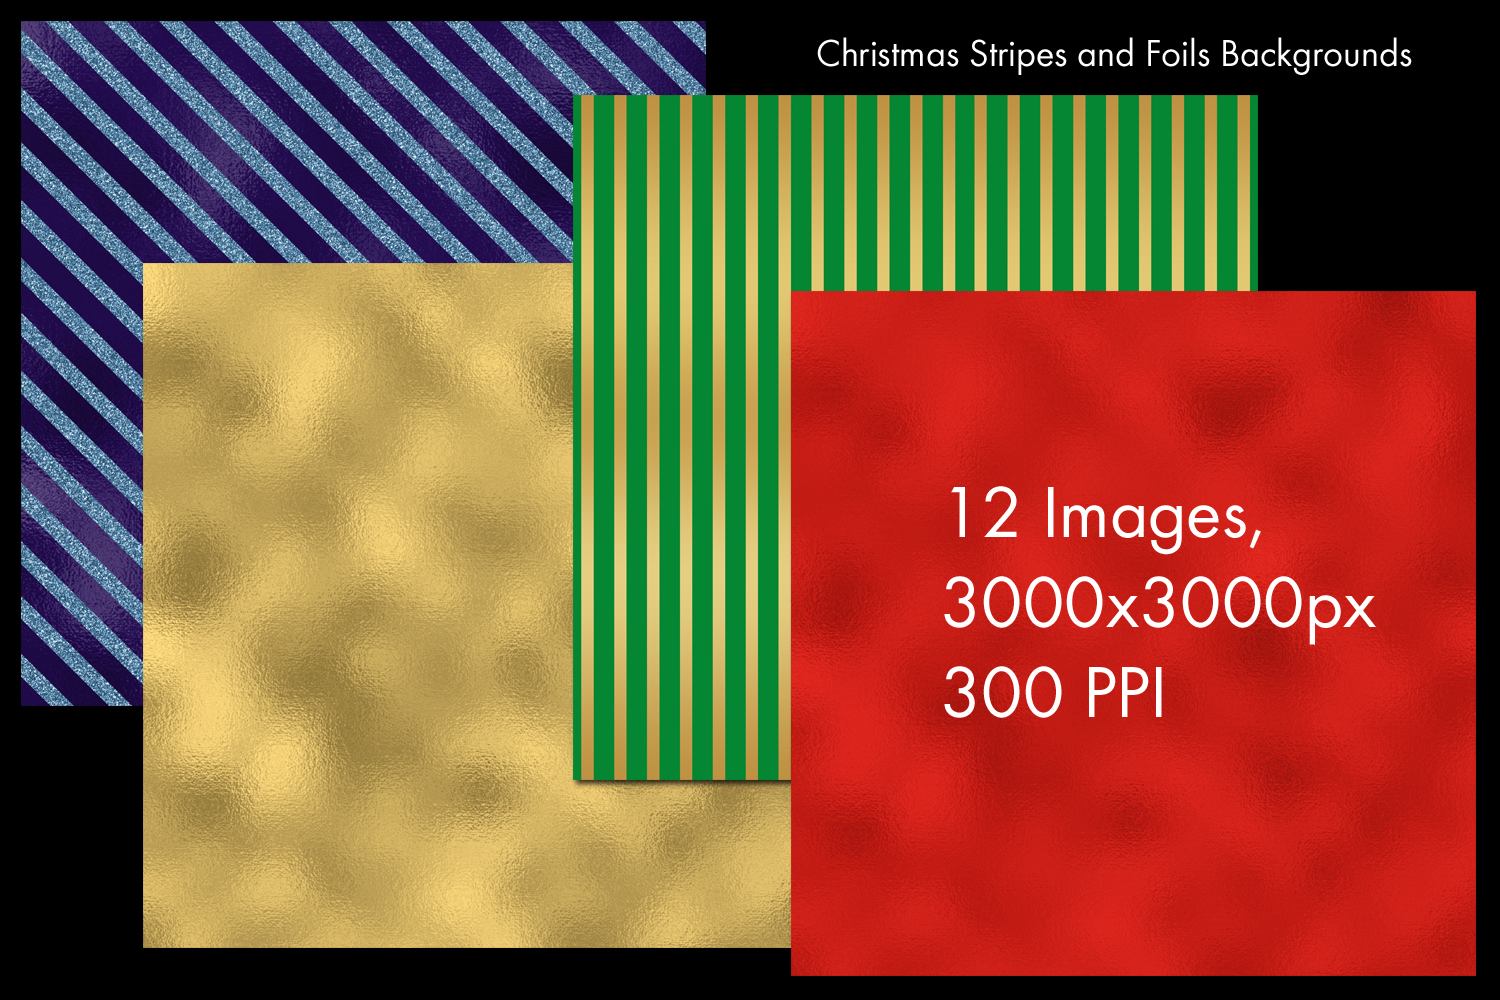 Christmas Stripes and Foils Backgrounds - 12 Image Set example image 2